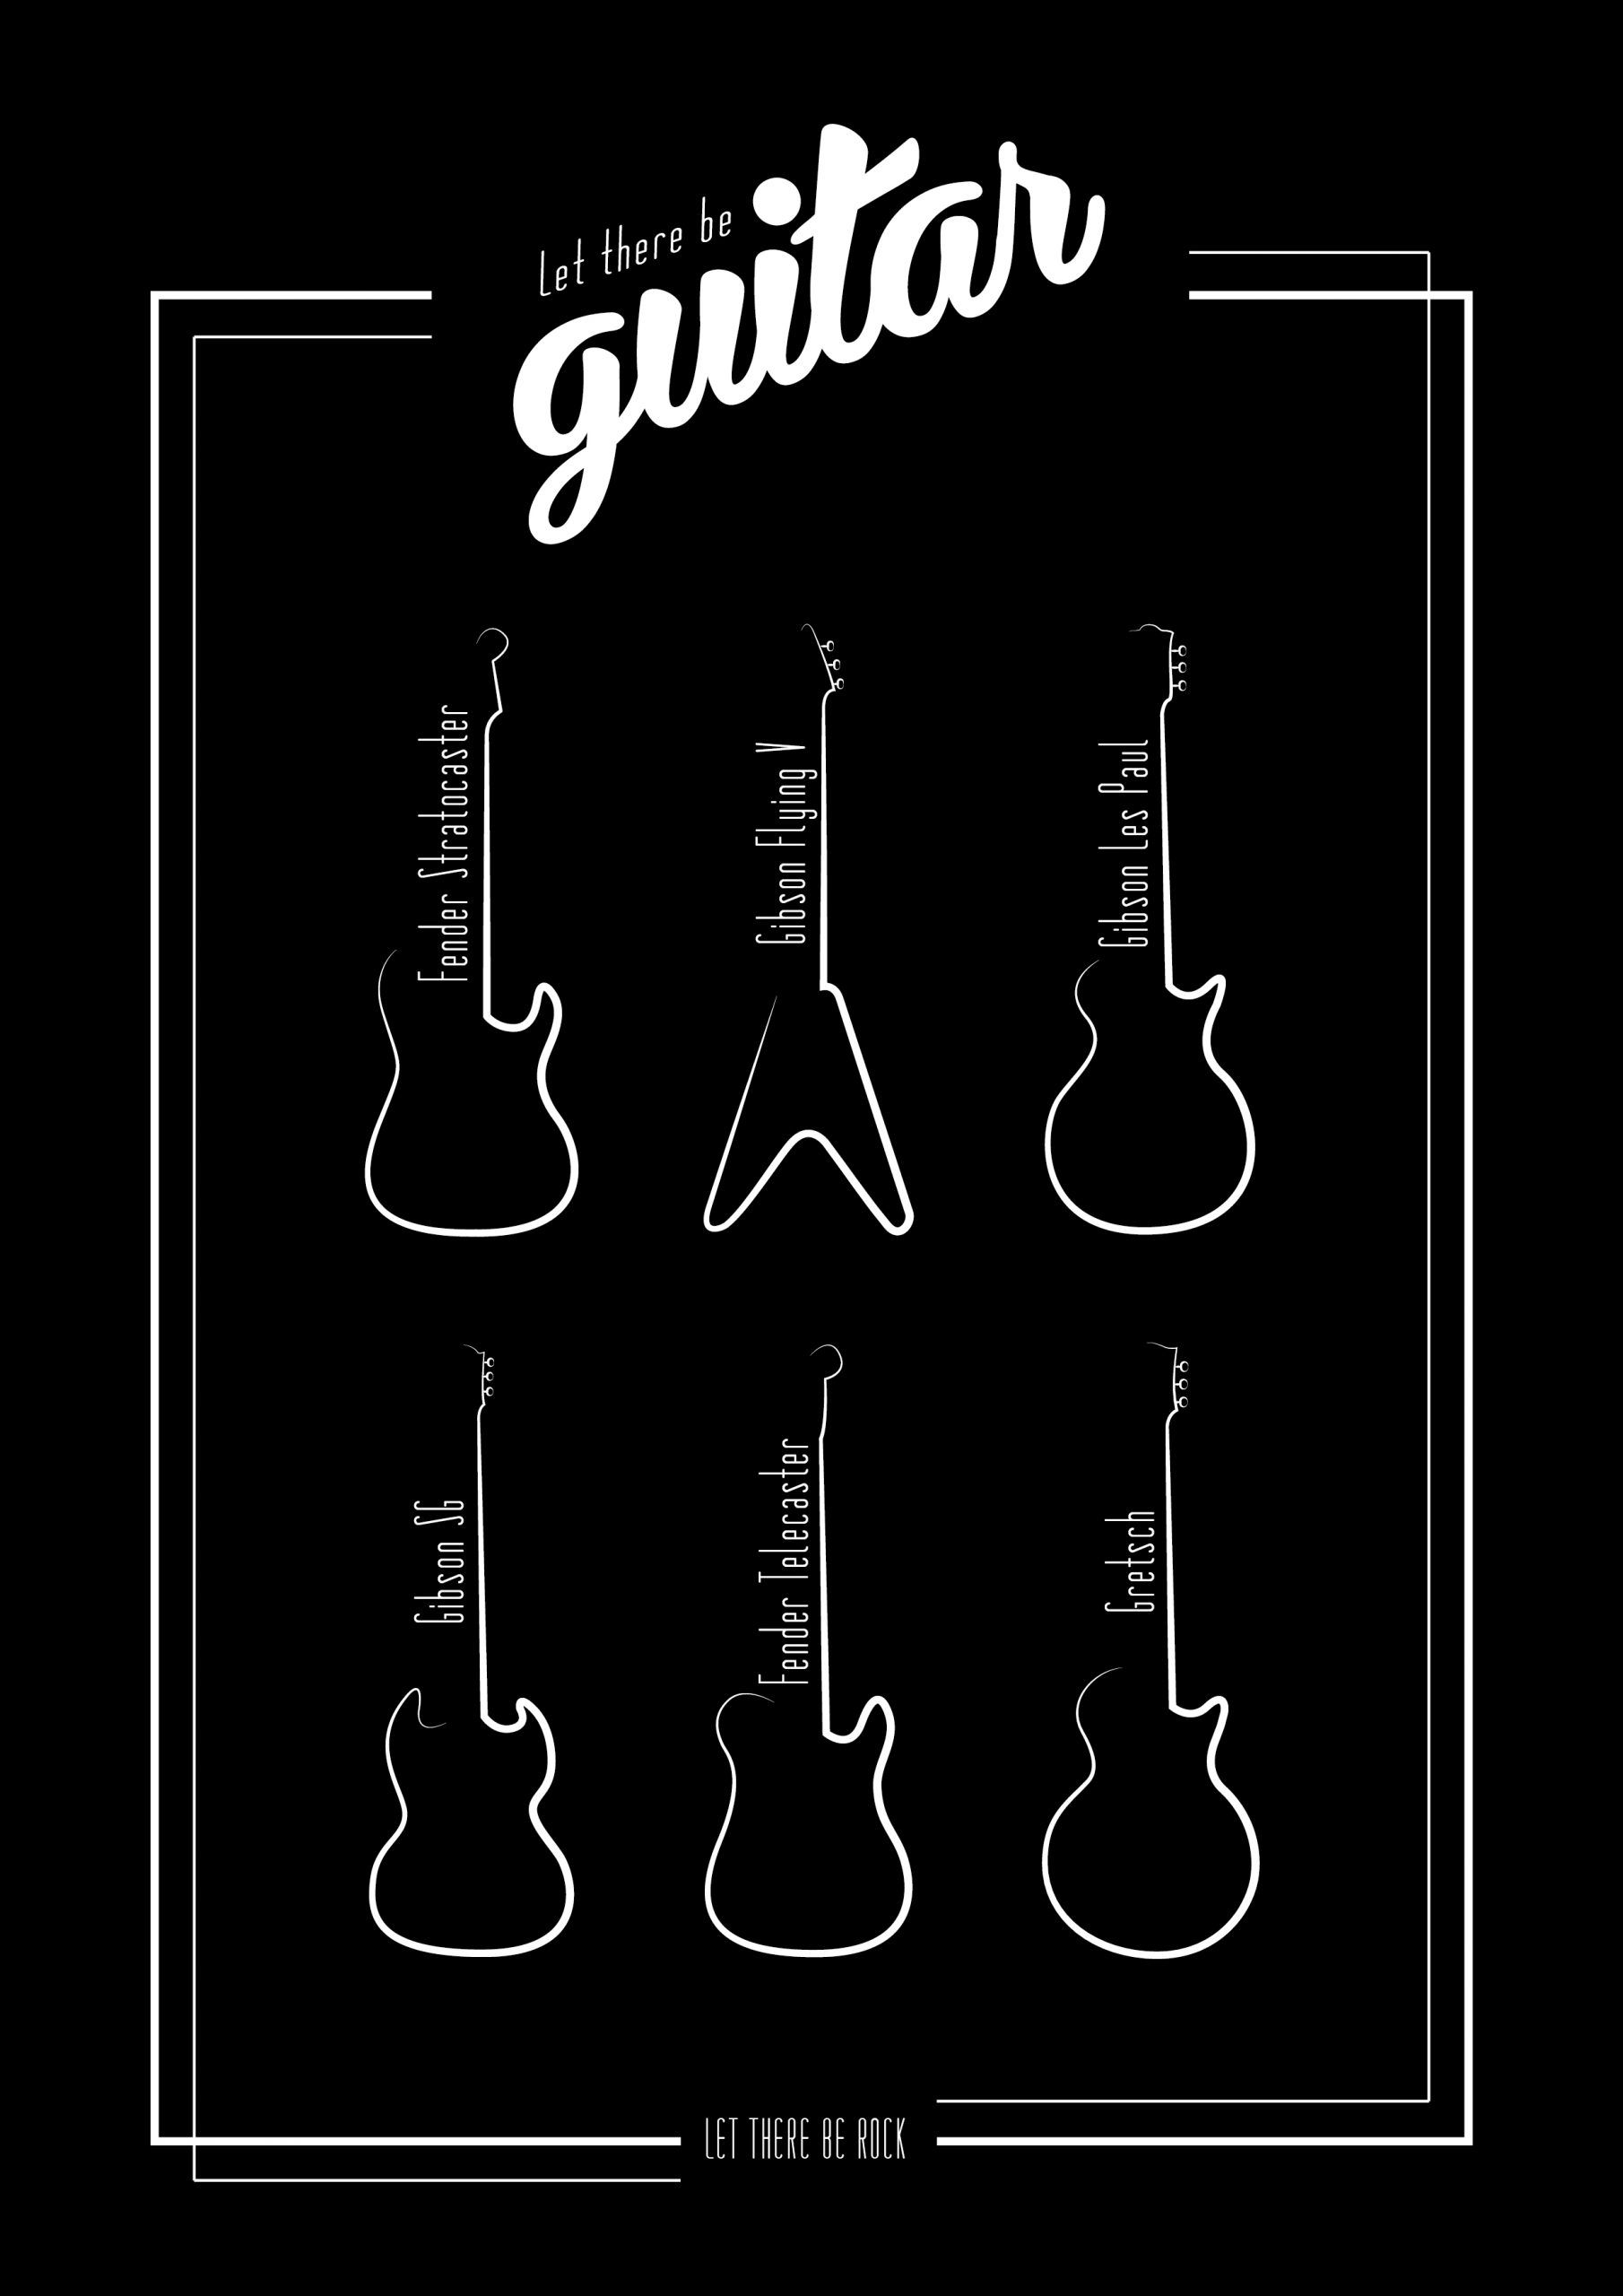 LET THERE BE GUITAR